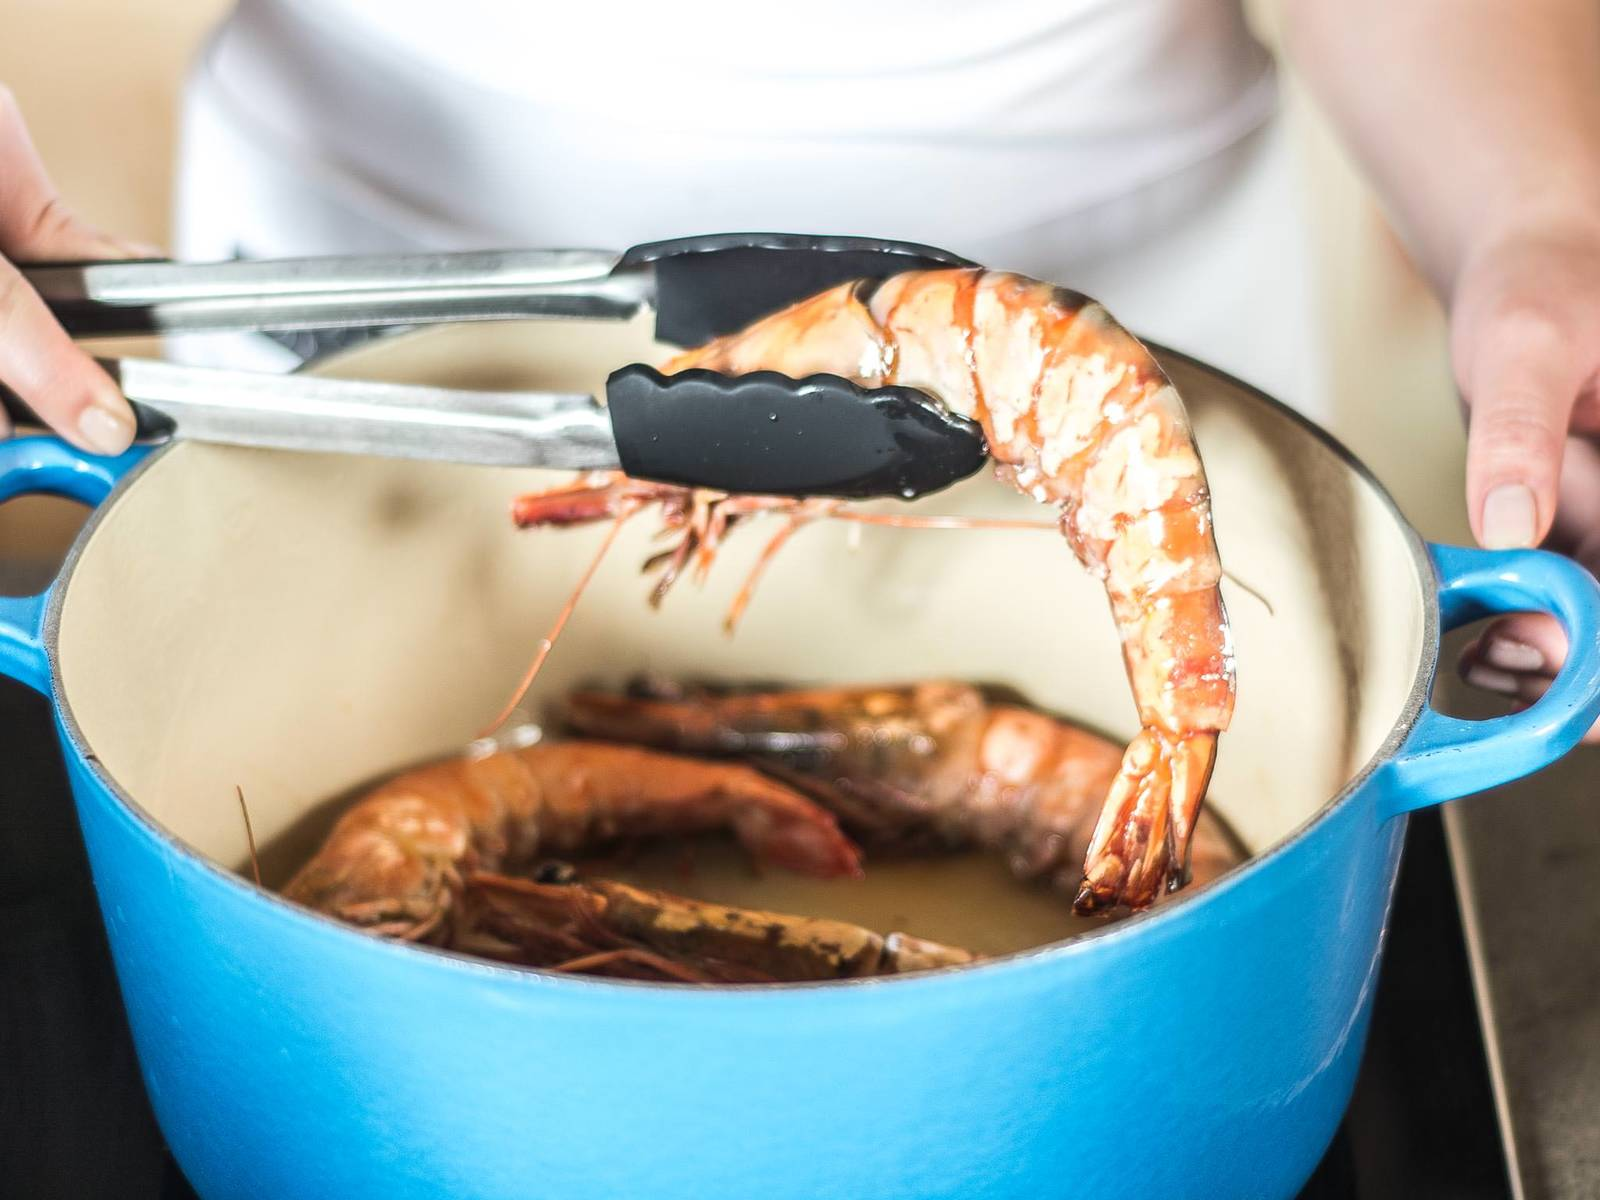 Sear the shrimp in a hot saucepan with some olive oil and the roughly chopped garlic. Season with salt and pepper, then remove from the saucepan.